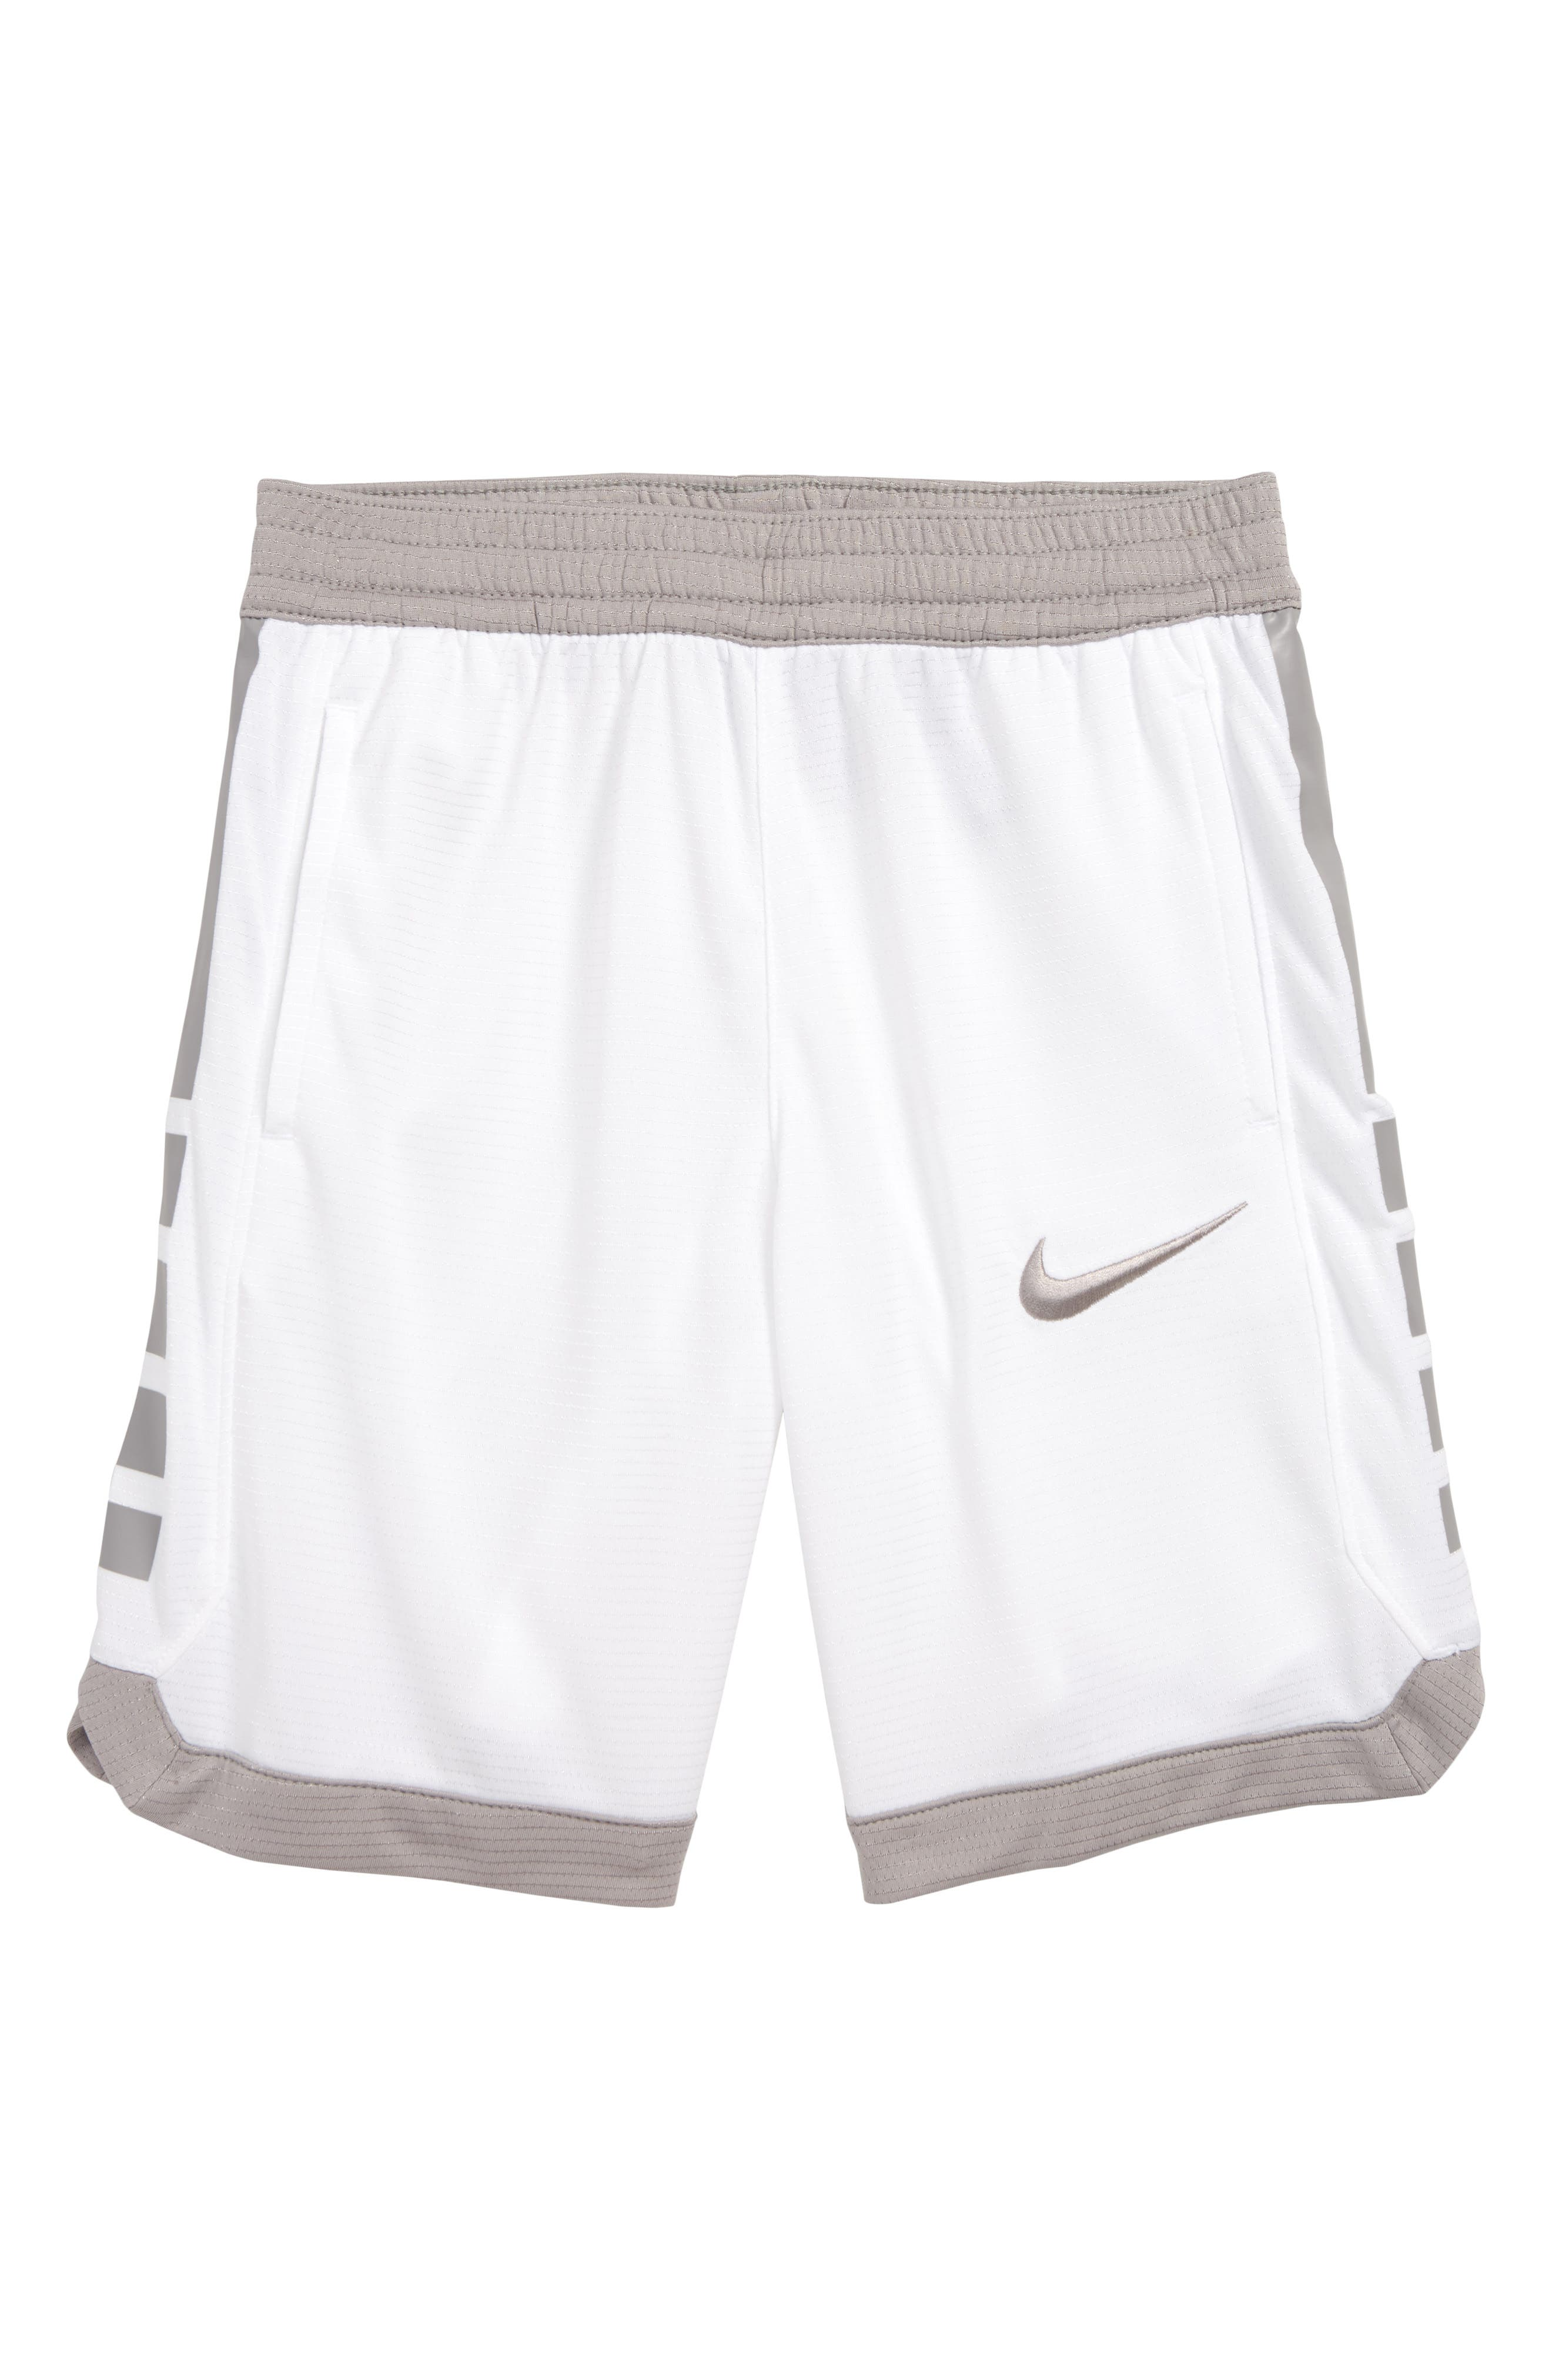 Boys Nike Dry Elite Stripe Athletic Shorts Size 4  White